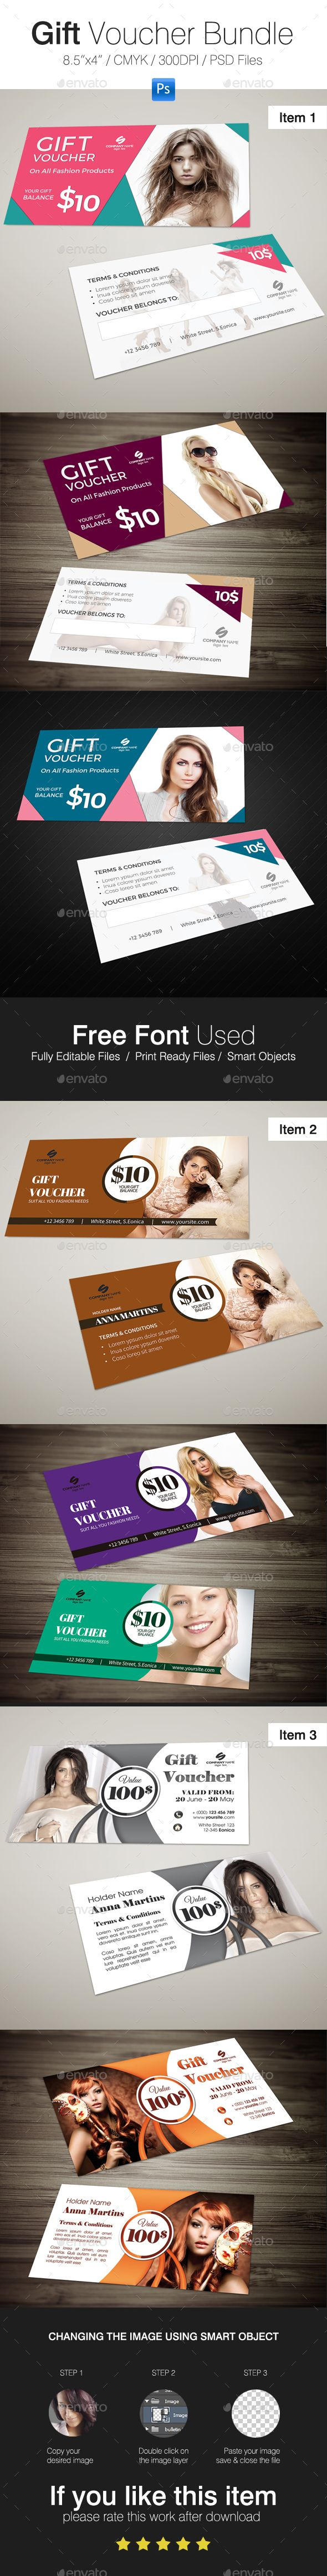 344 best free gift box templates images on pinterest gift boxes